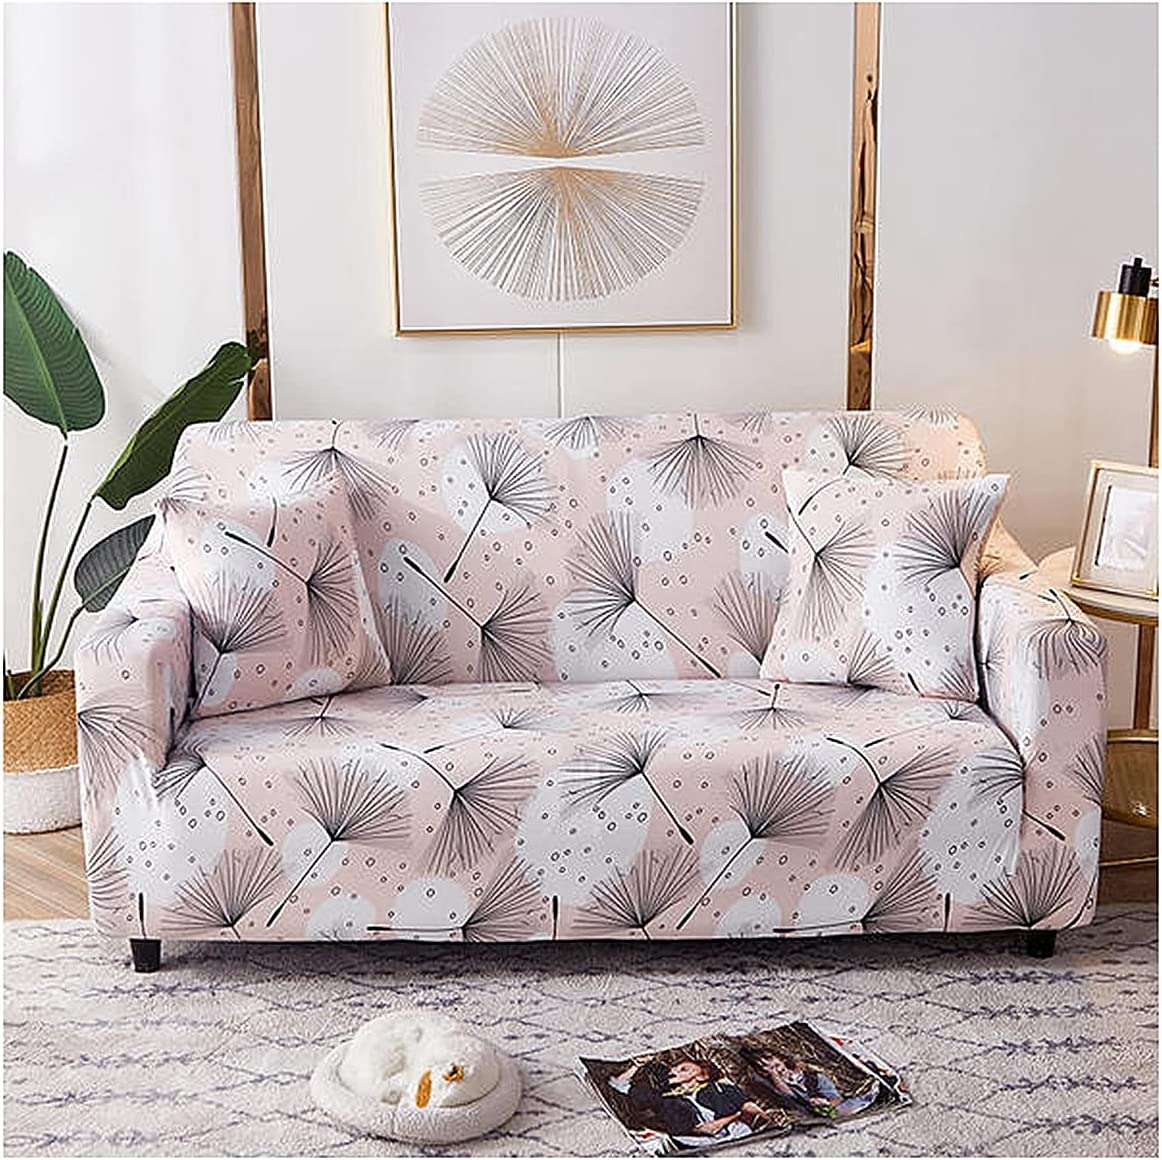 Sofa New Free Shipping Slipcover Stretch Elastic Fabric Pattern Chair Couch latest Settee